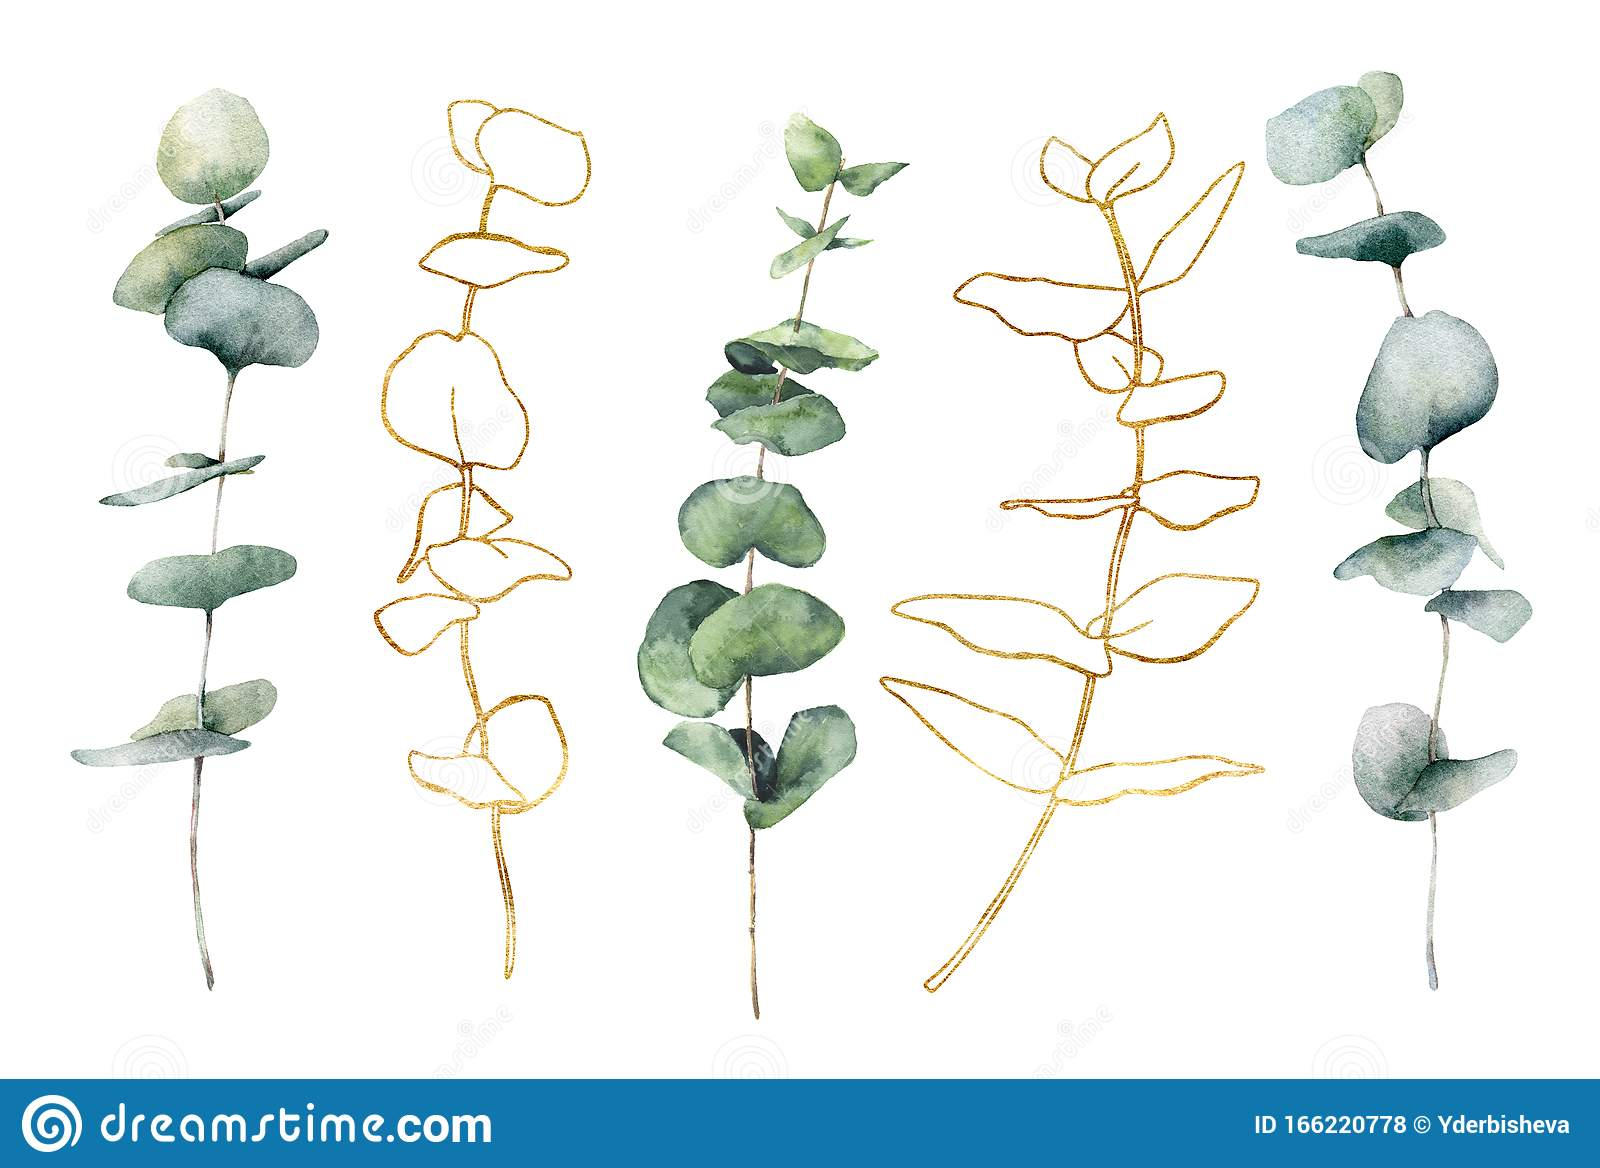 Watercolor Set With Golden Eucalyptus Hand Painted Line Art Branches And Leaves Isolated On White Background Floral Stock Illustration Illustration Of Delicate Branch 166220778